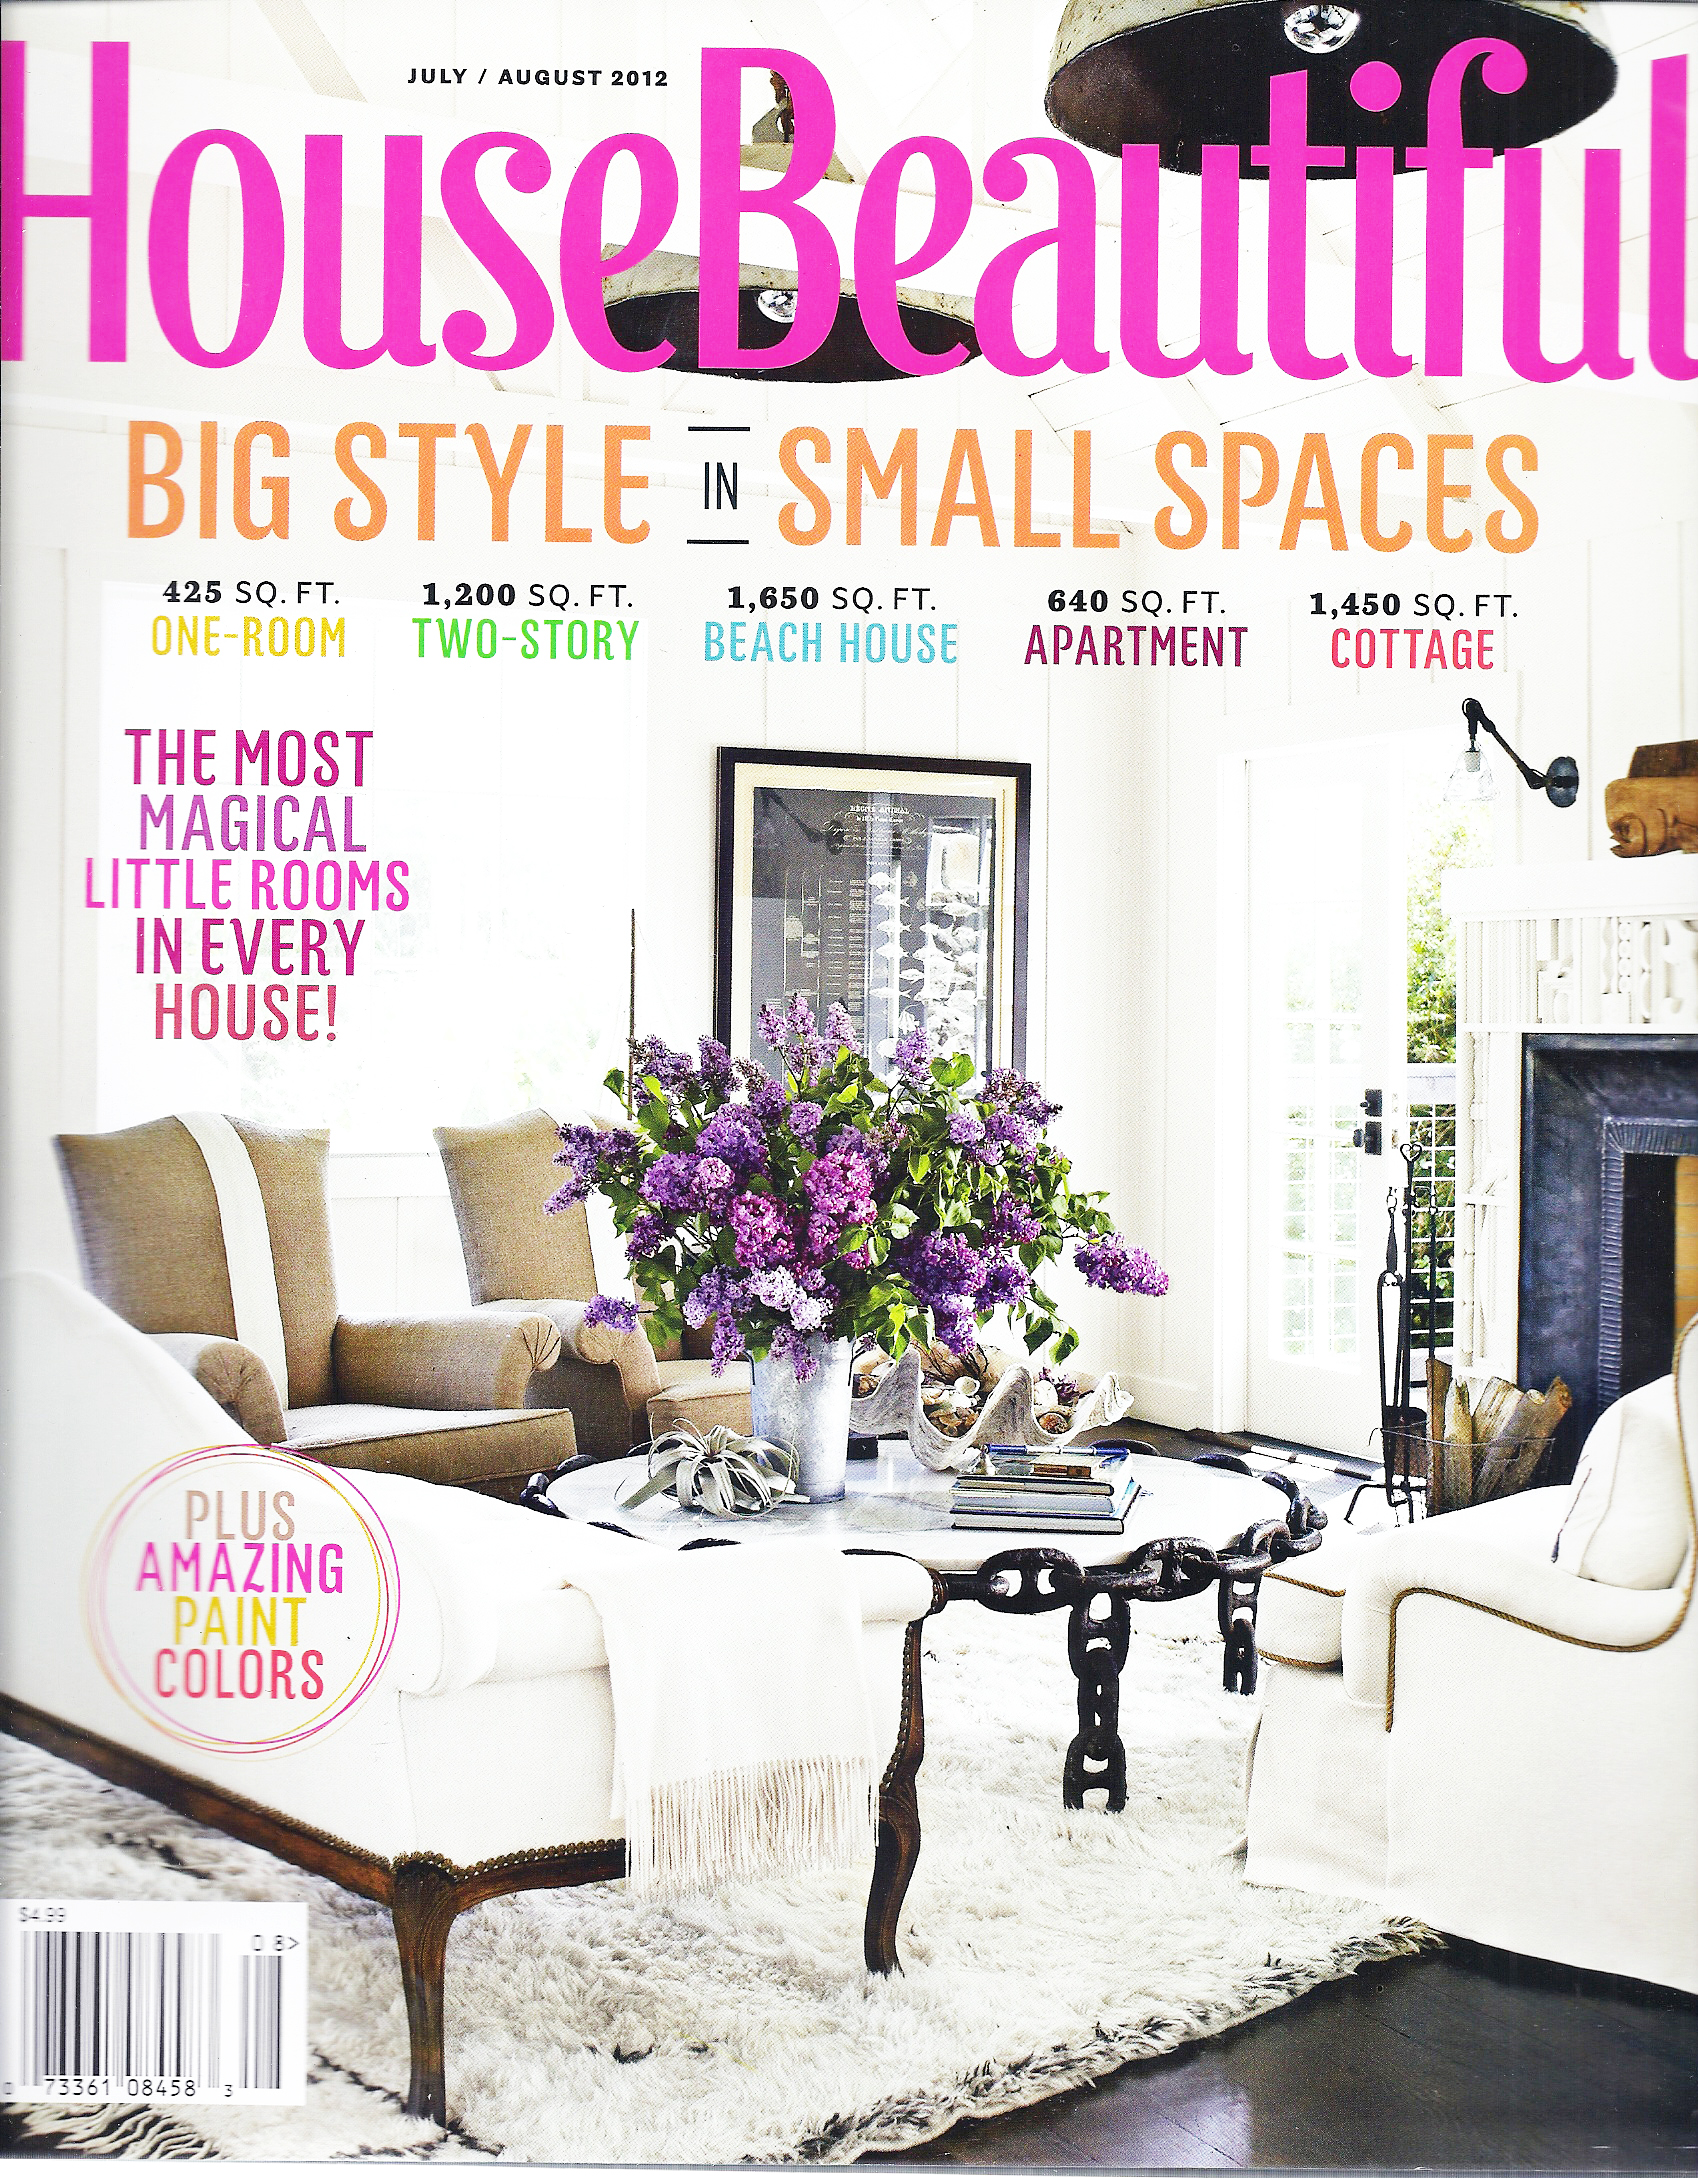 House Beutiful house beautiful magazine | interior provisions